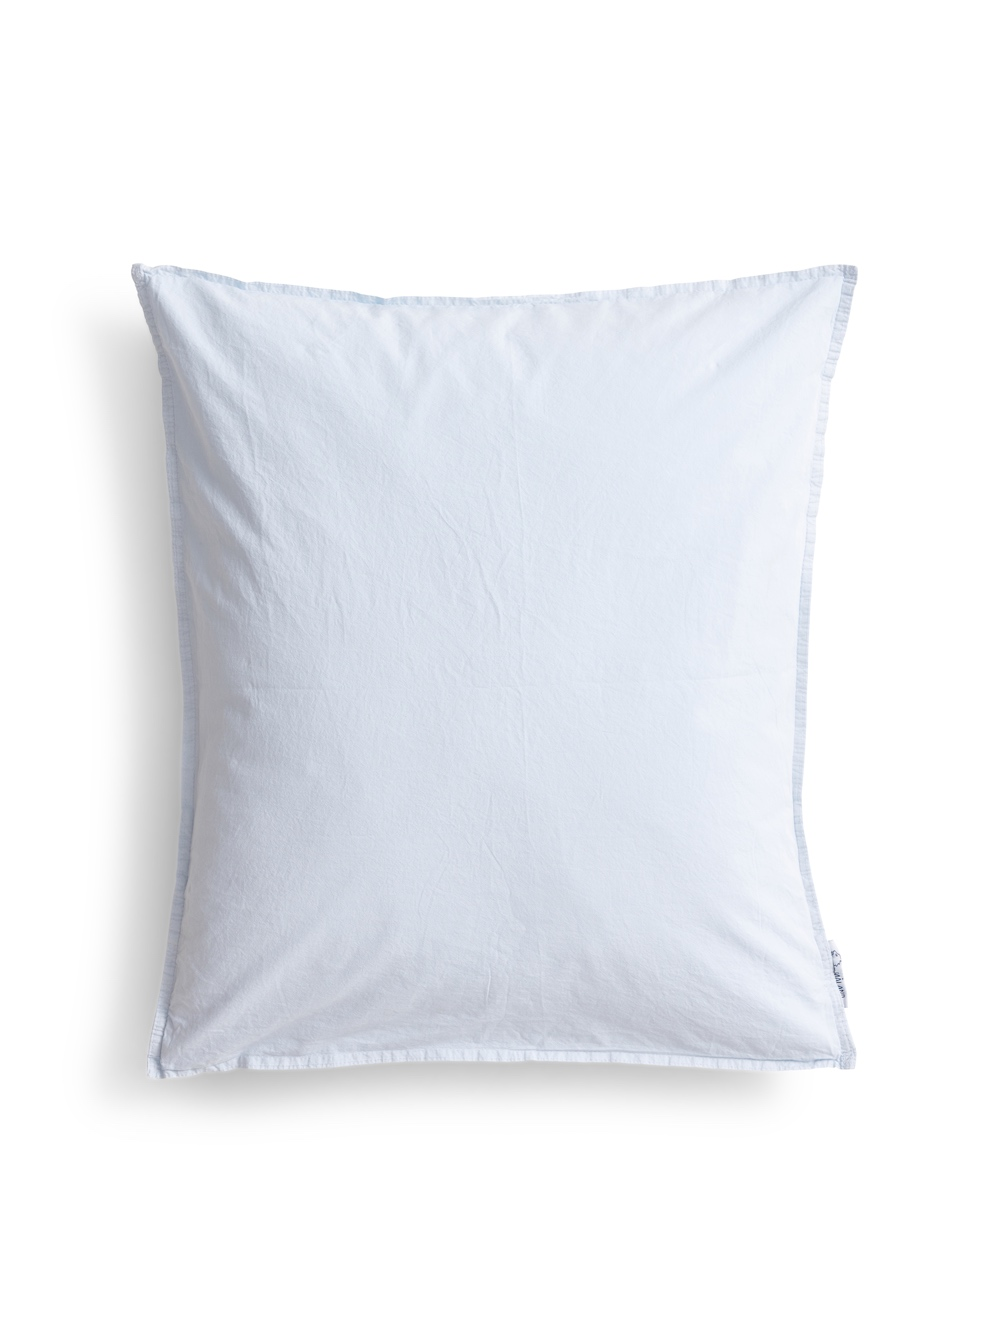 50x60cm Pillowcase Crinkle Heavenly